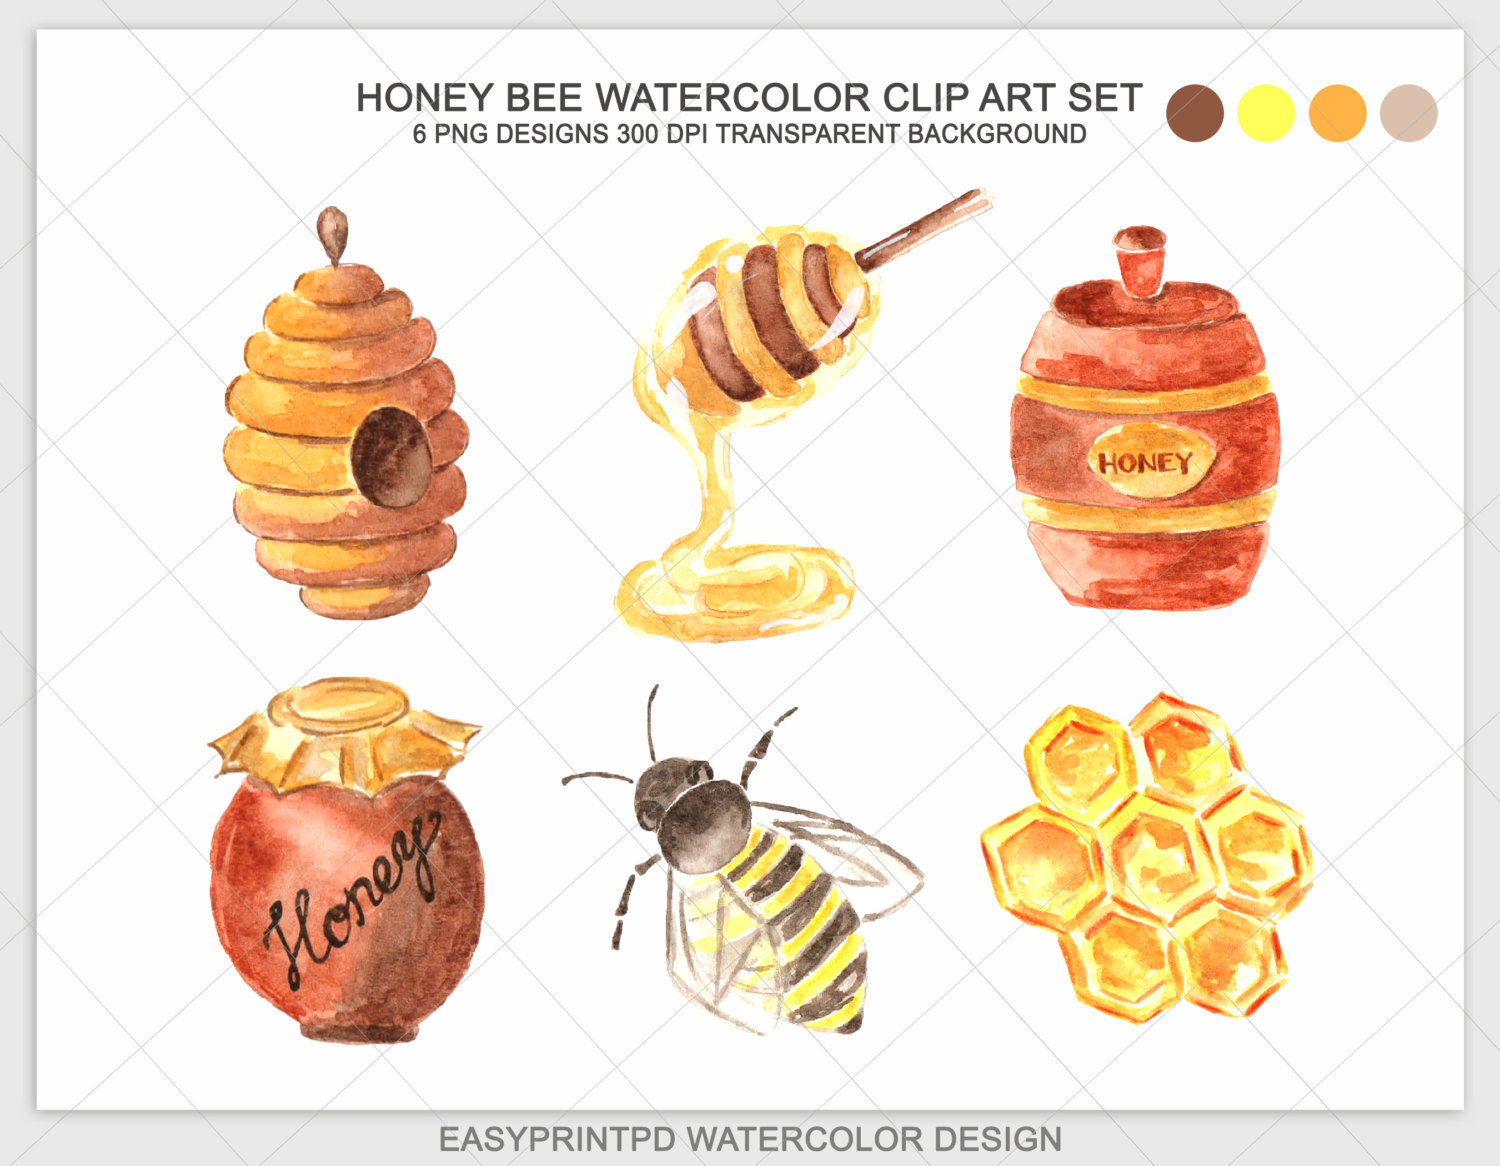 Bee Hive clipart honeycomb Watercolor Bee Etsy clipart Digital